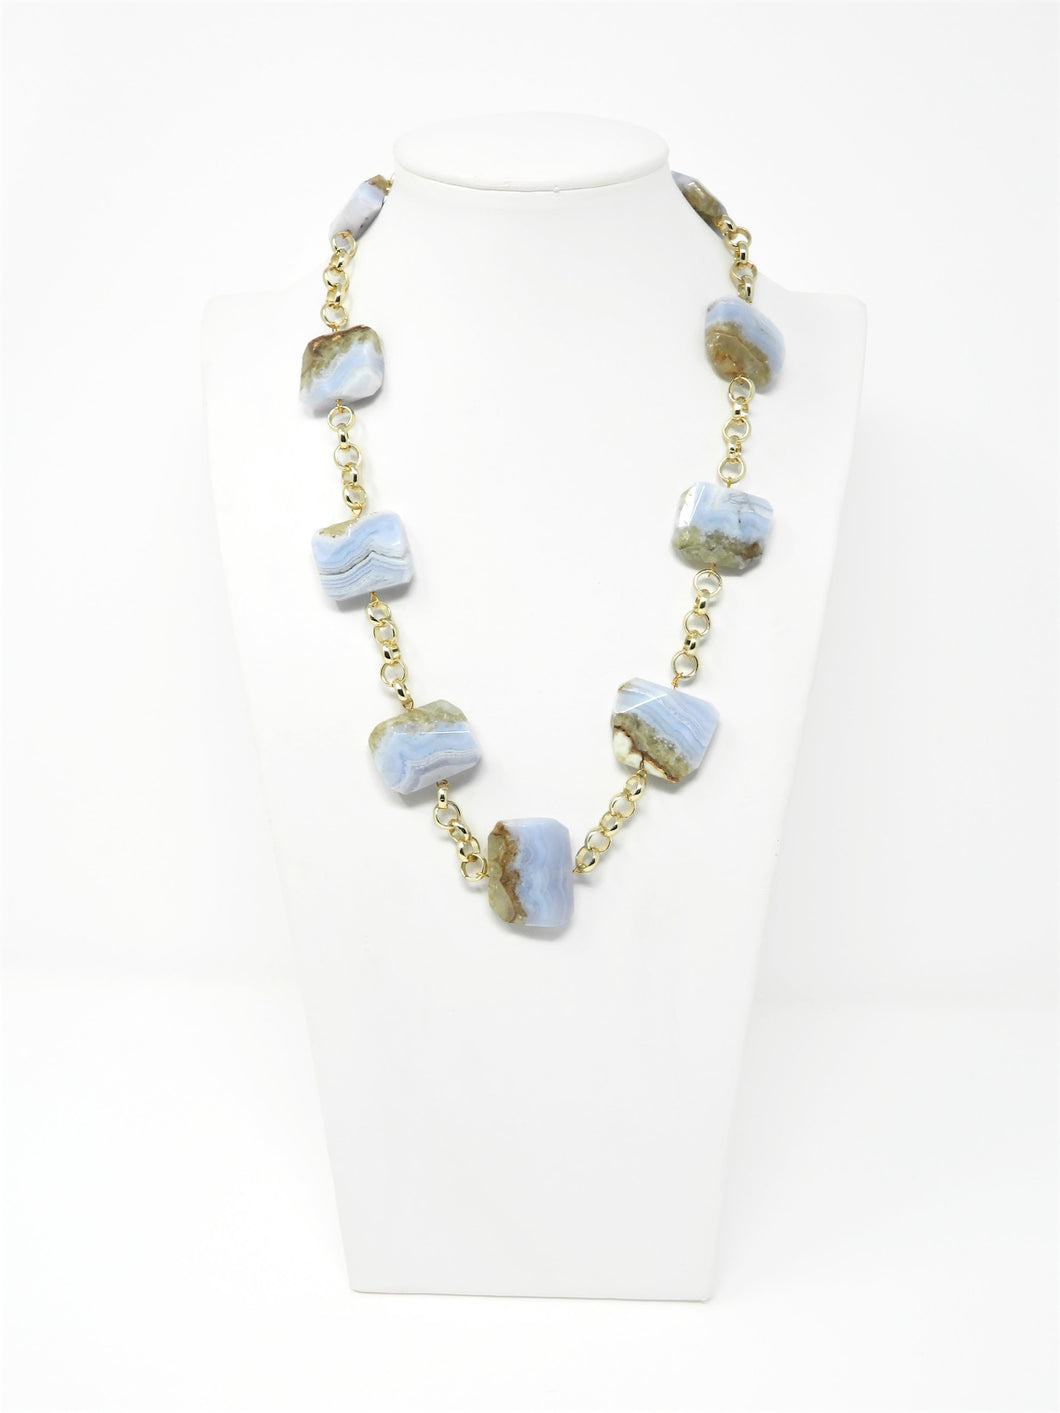 Necklace with irregular striated chalcedony stones